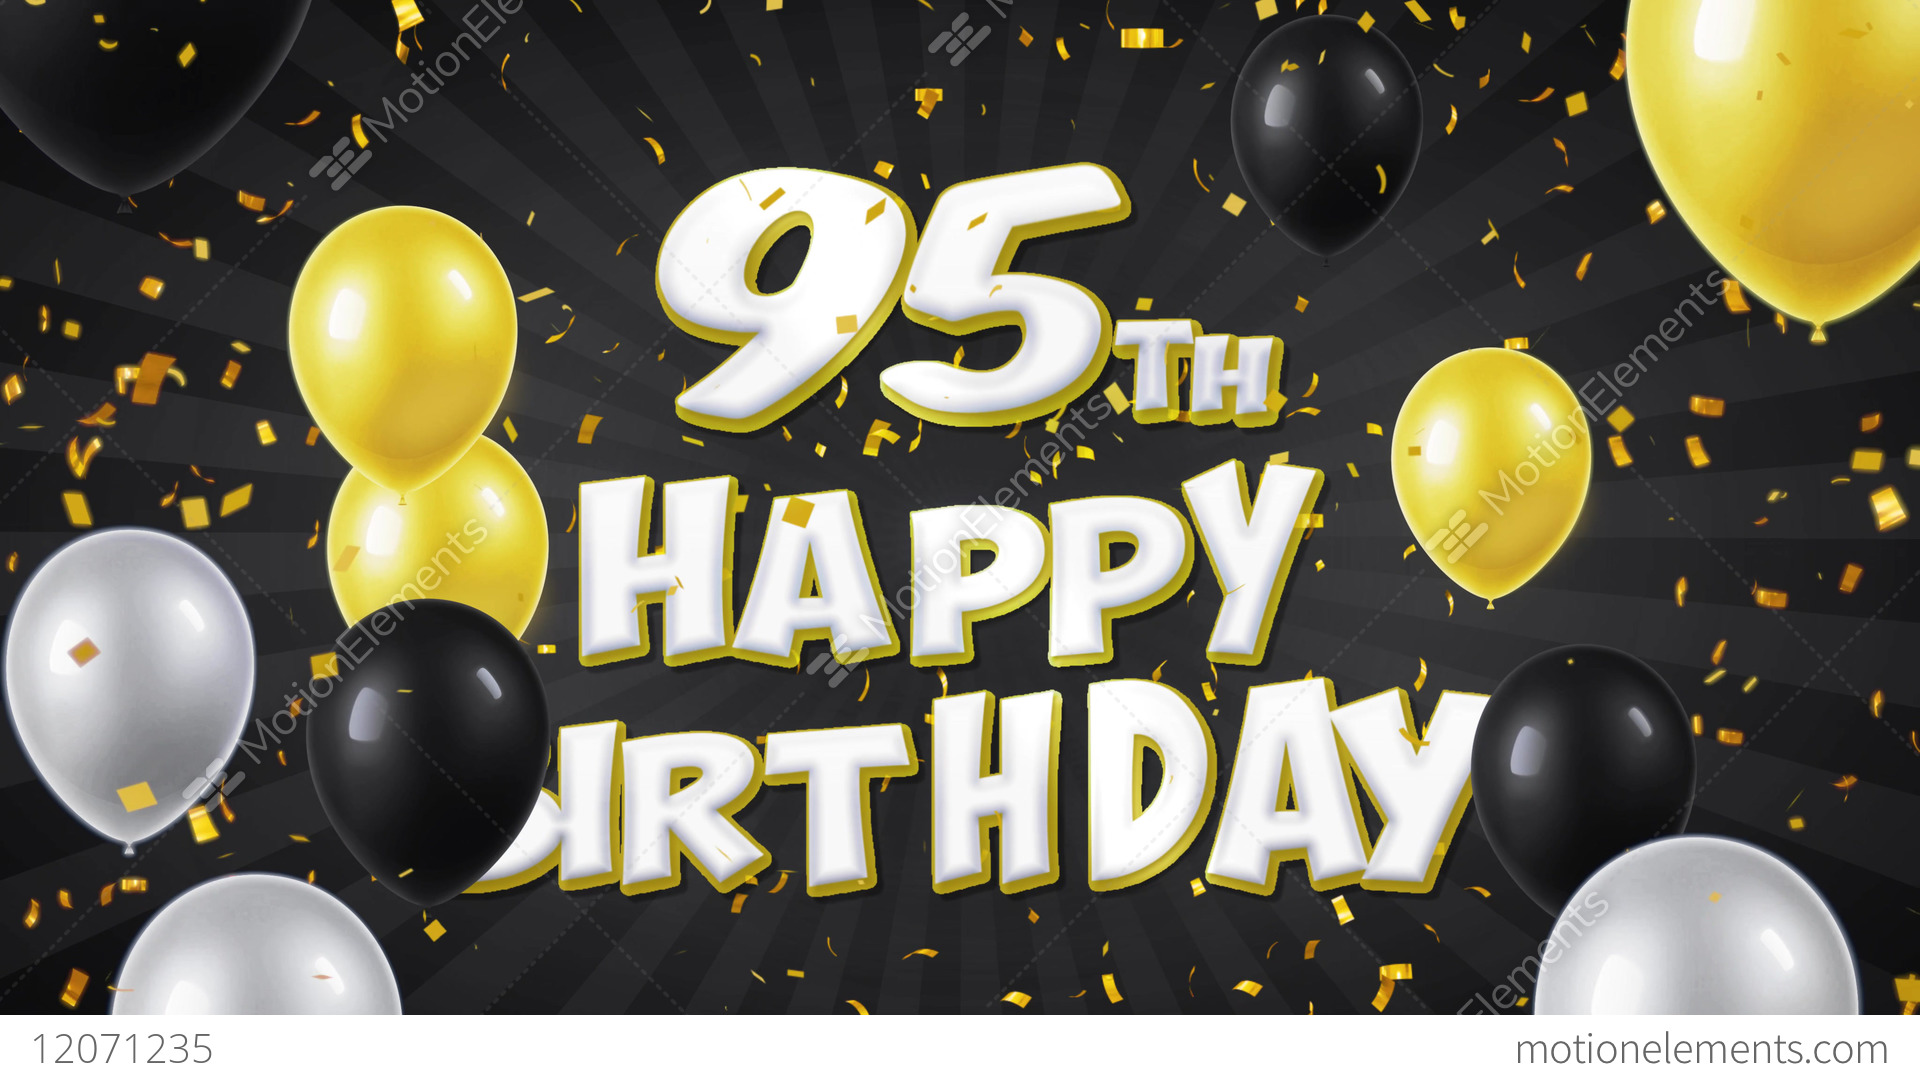 95th Happy Birthday Black Text Greeting Wishes Stock Video